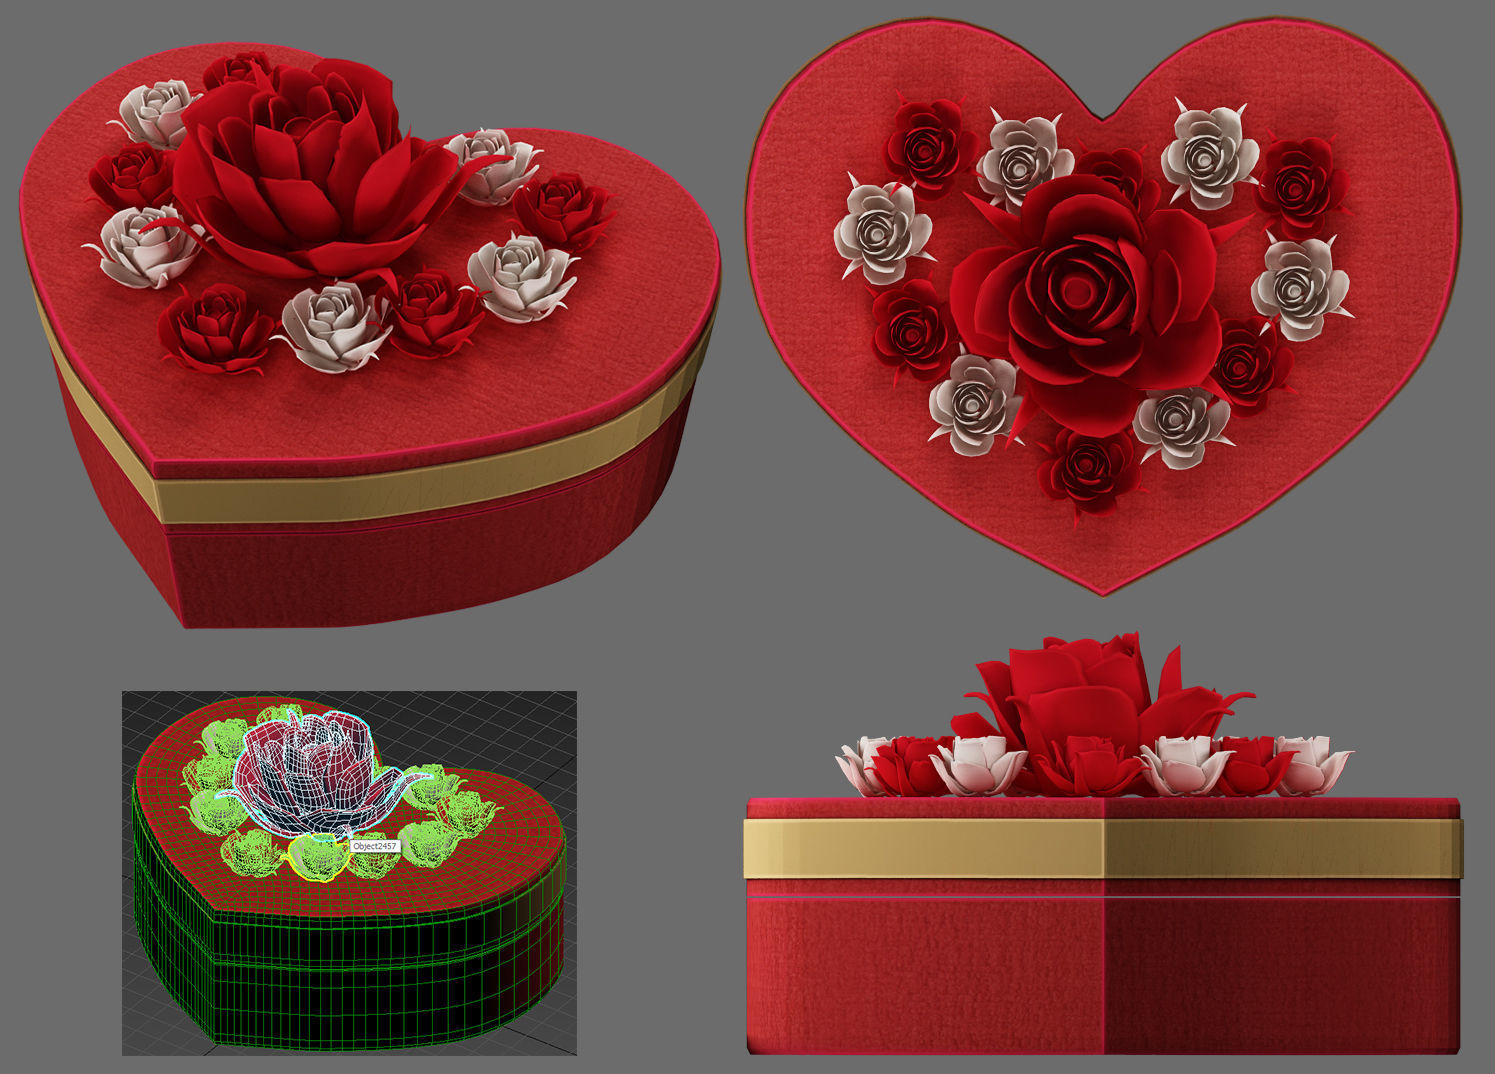 red box heart and flowers